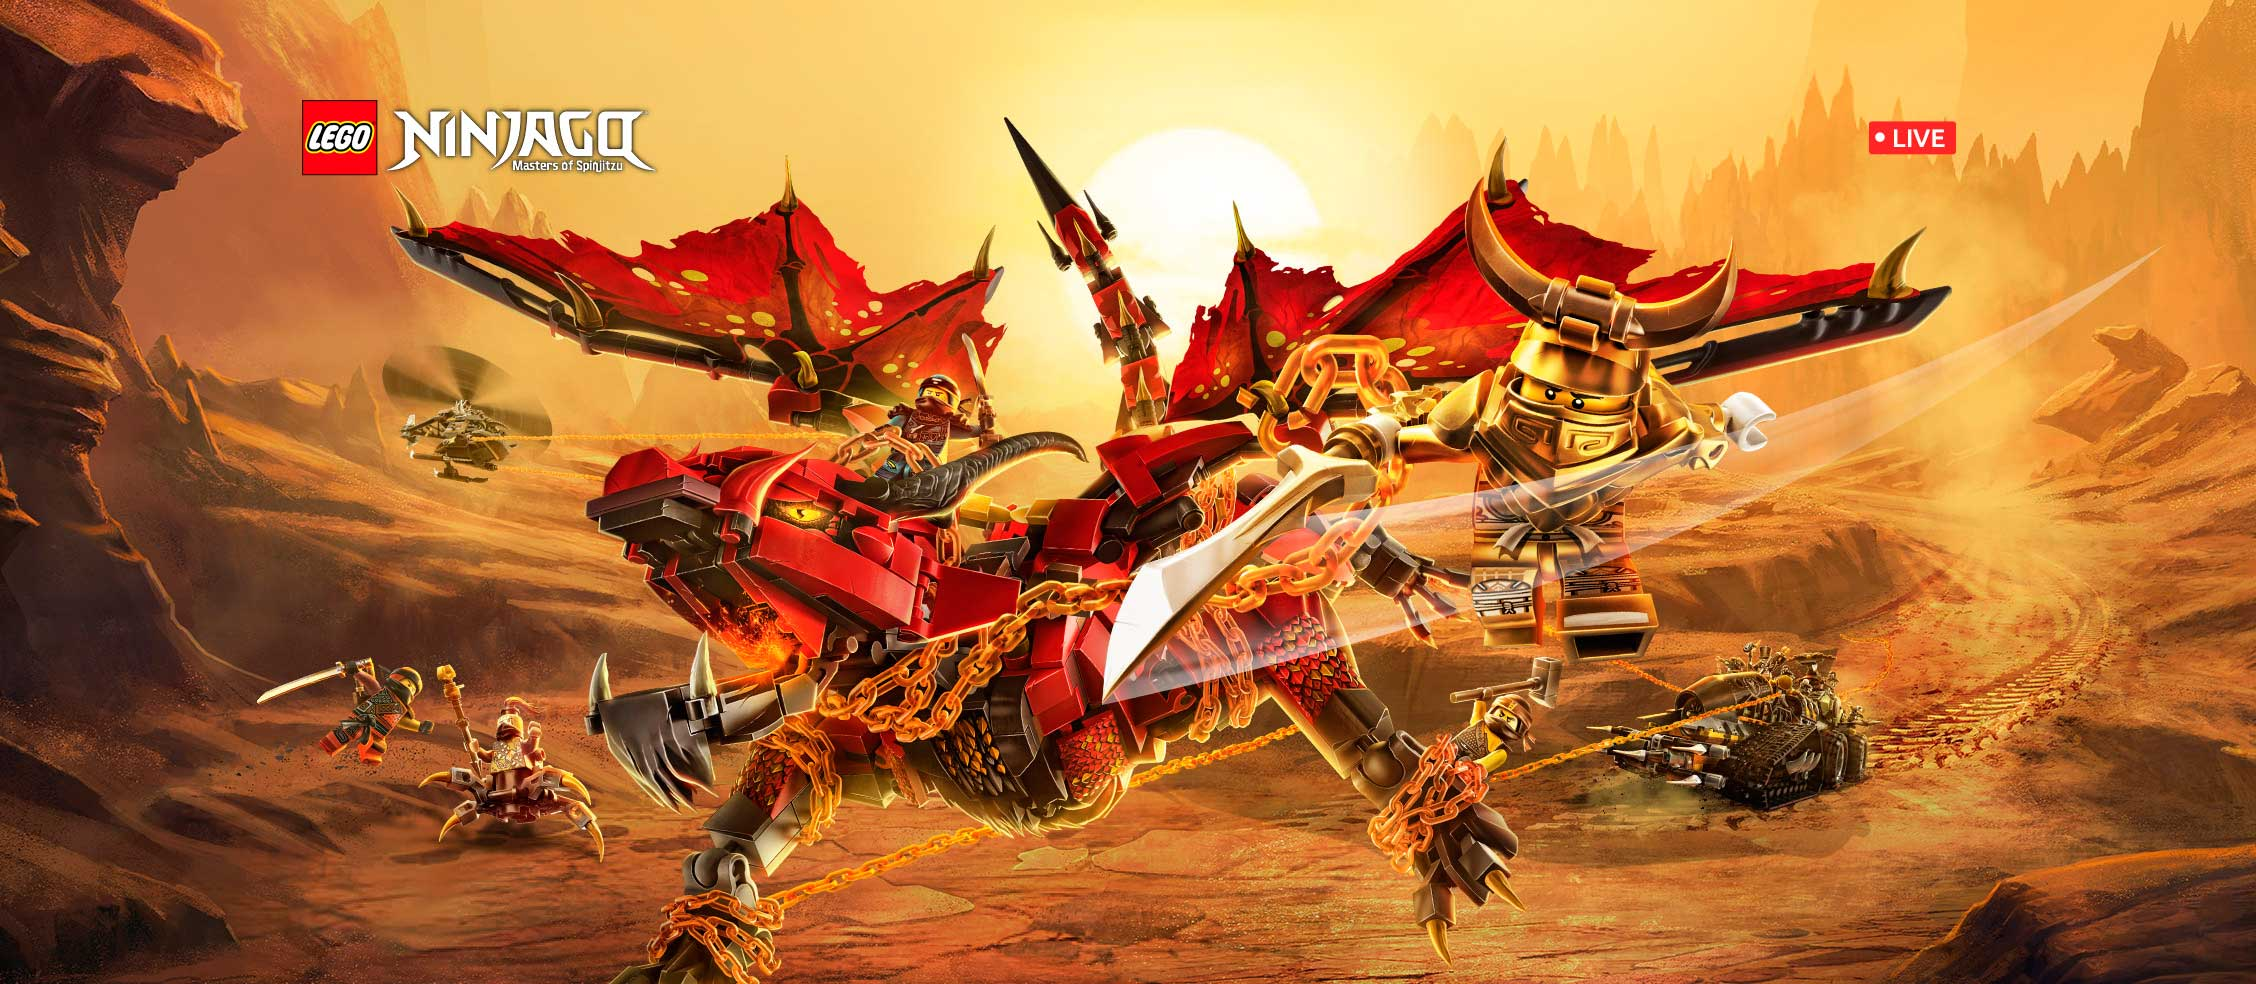 ninjago free the dragons fight the dragon hunters lego com my